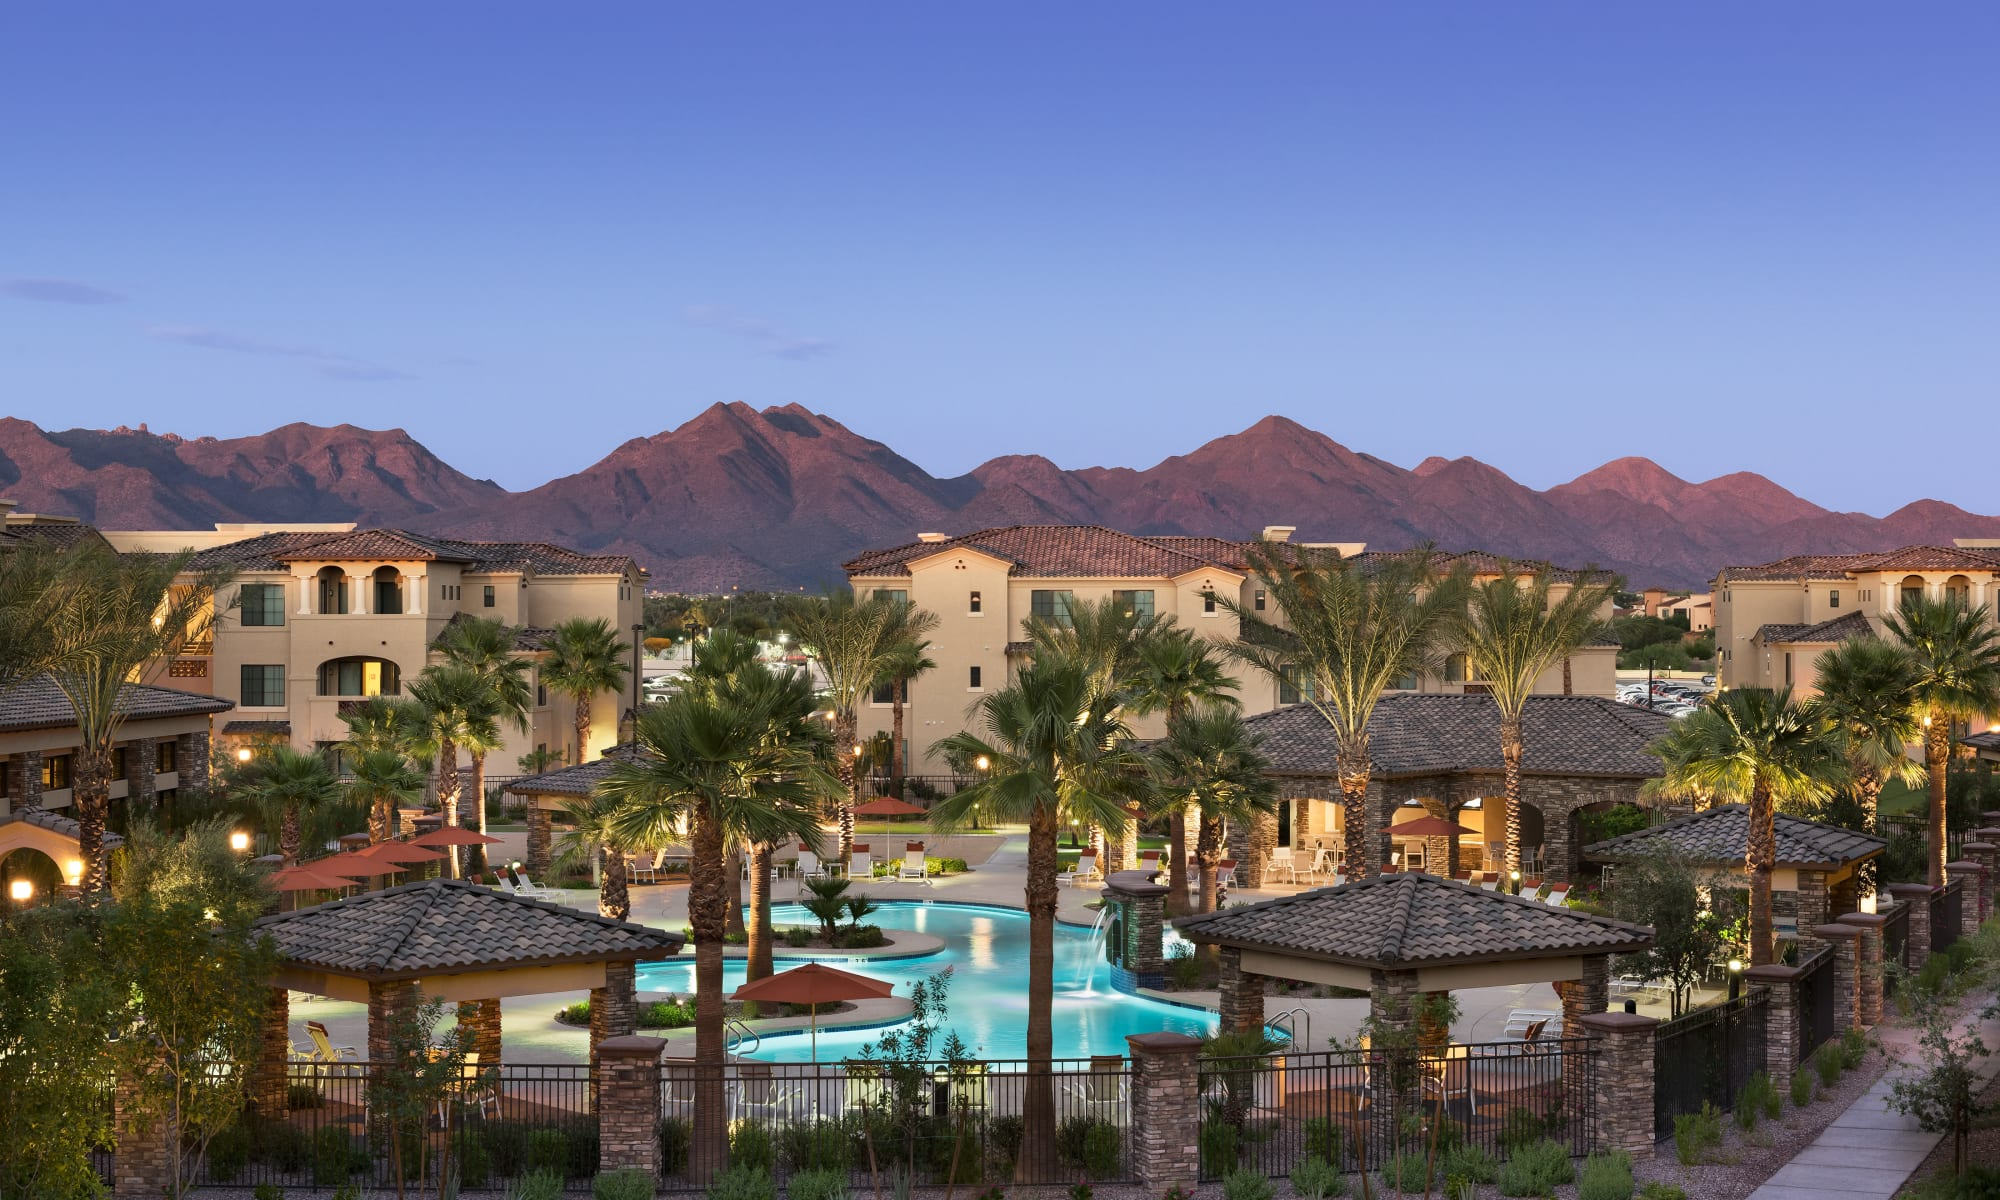 San Milan offers a luxury swimming pool in Phoenix, Arizona